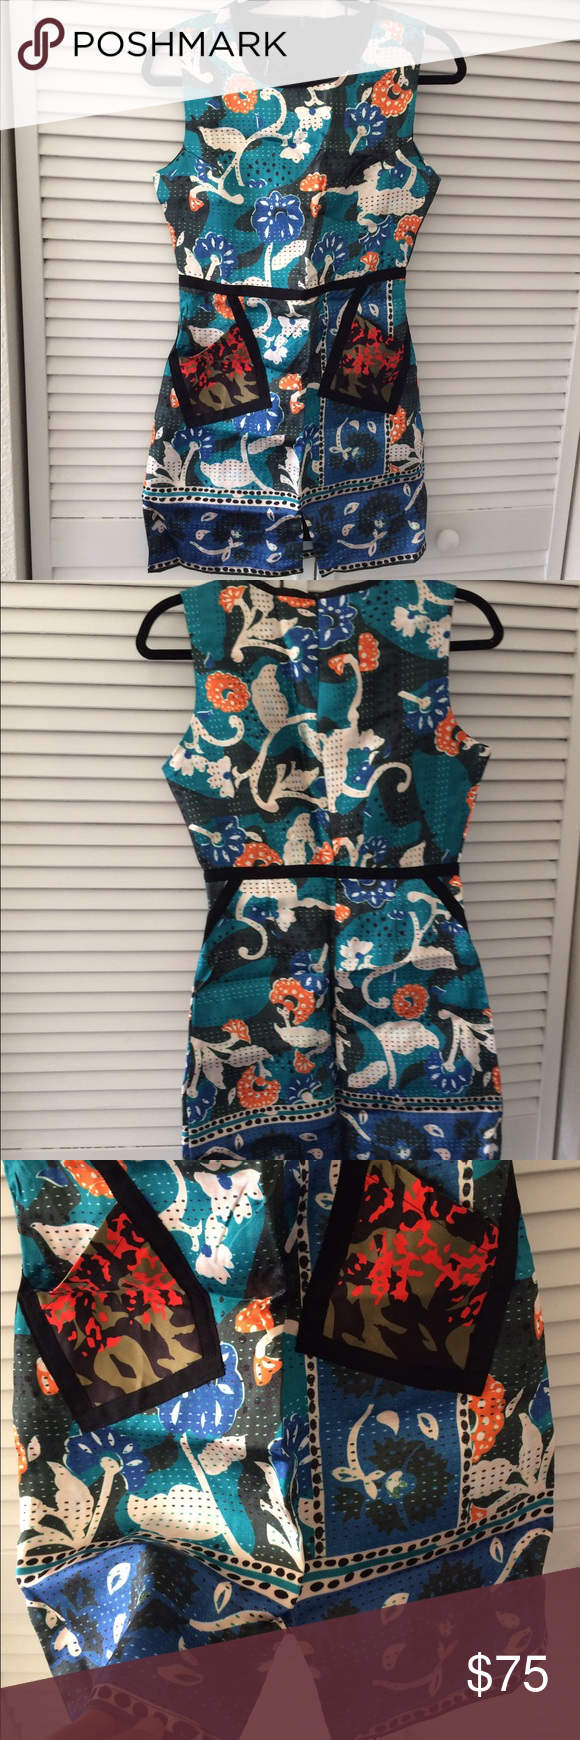 Brand new dress with very unique prints Brand new with tag, size But can fit Size M Dresses